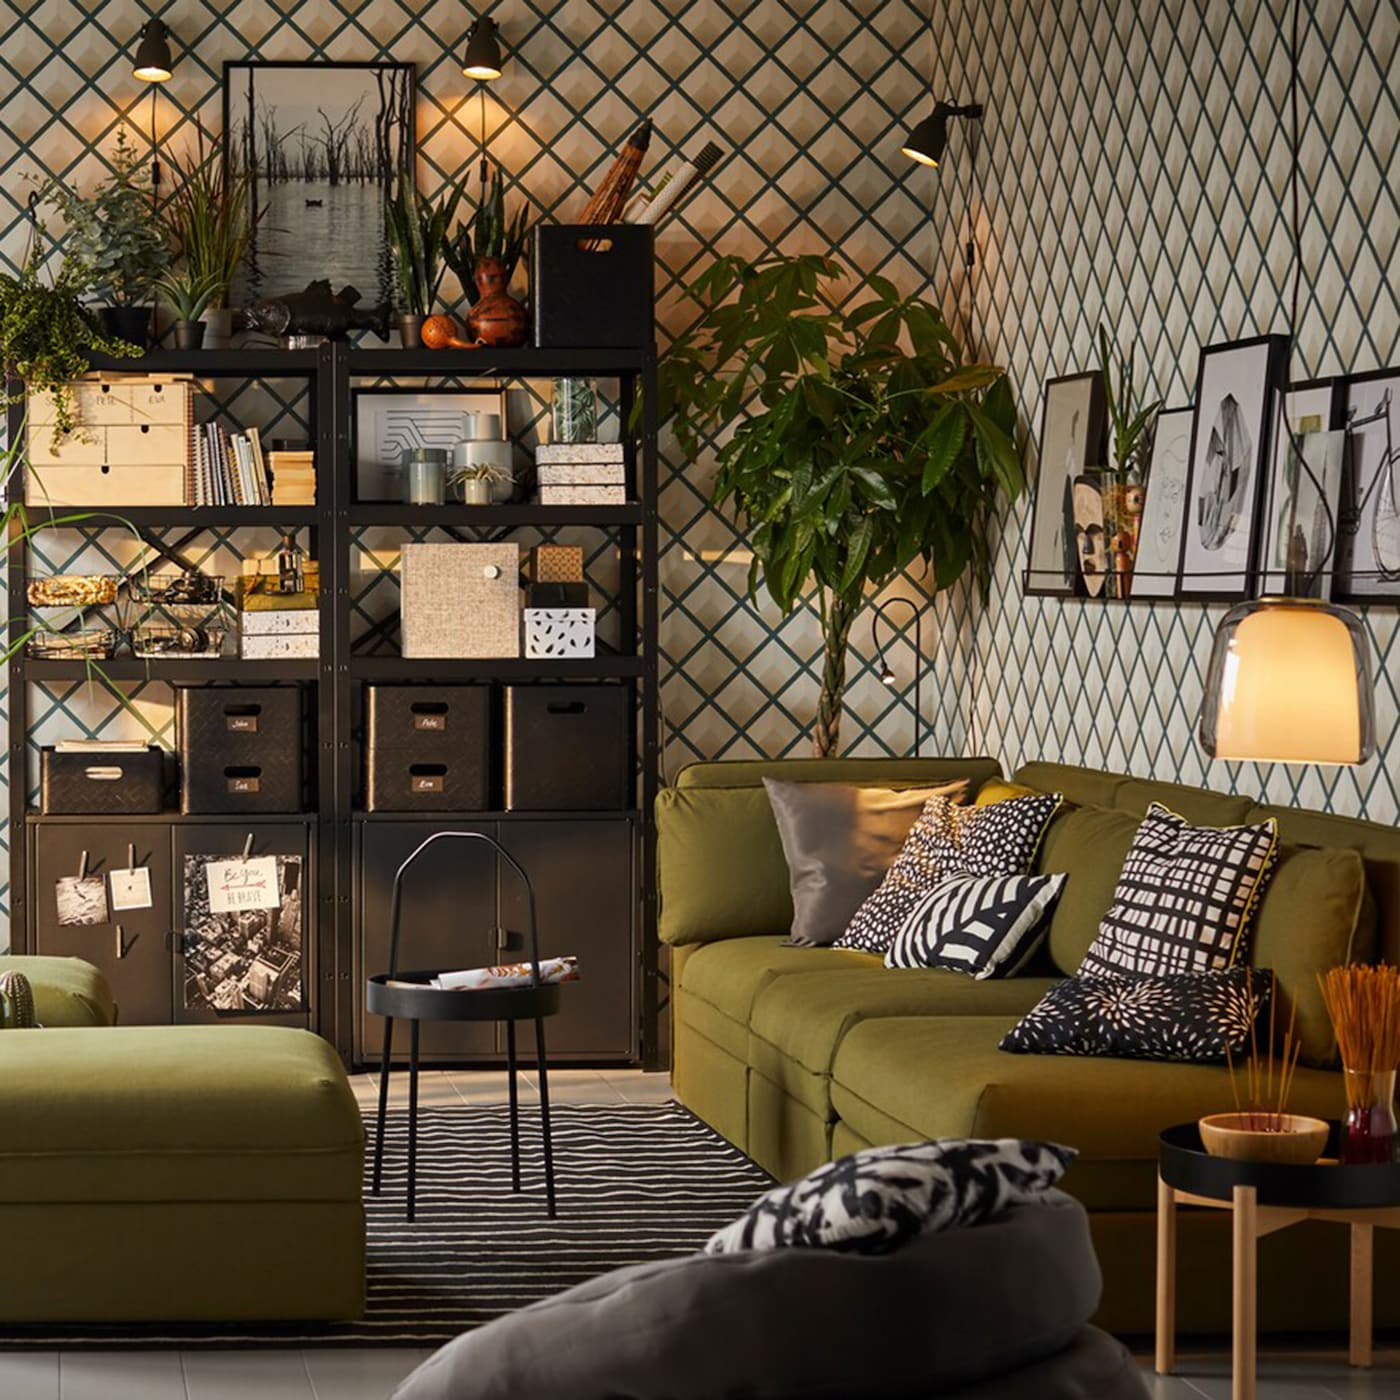 Libreria A Muro Moderna Ikea furnishing ideas & inspiration for your living room - ikea